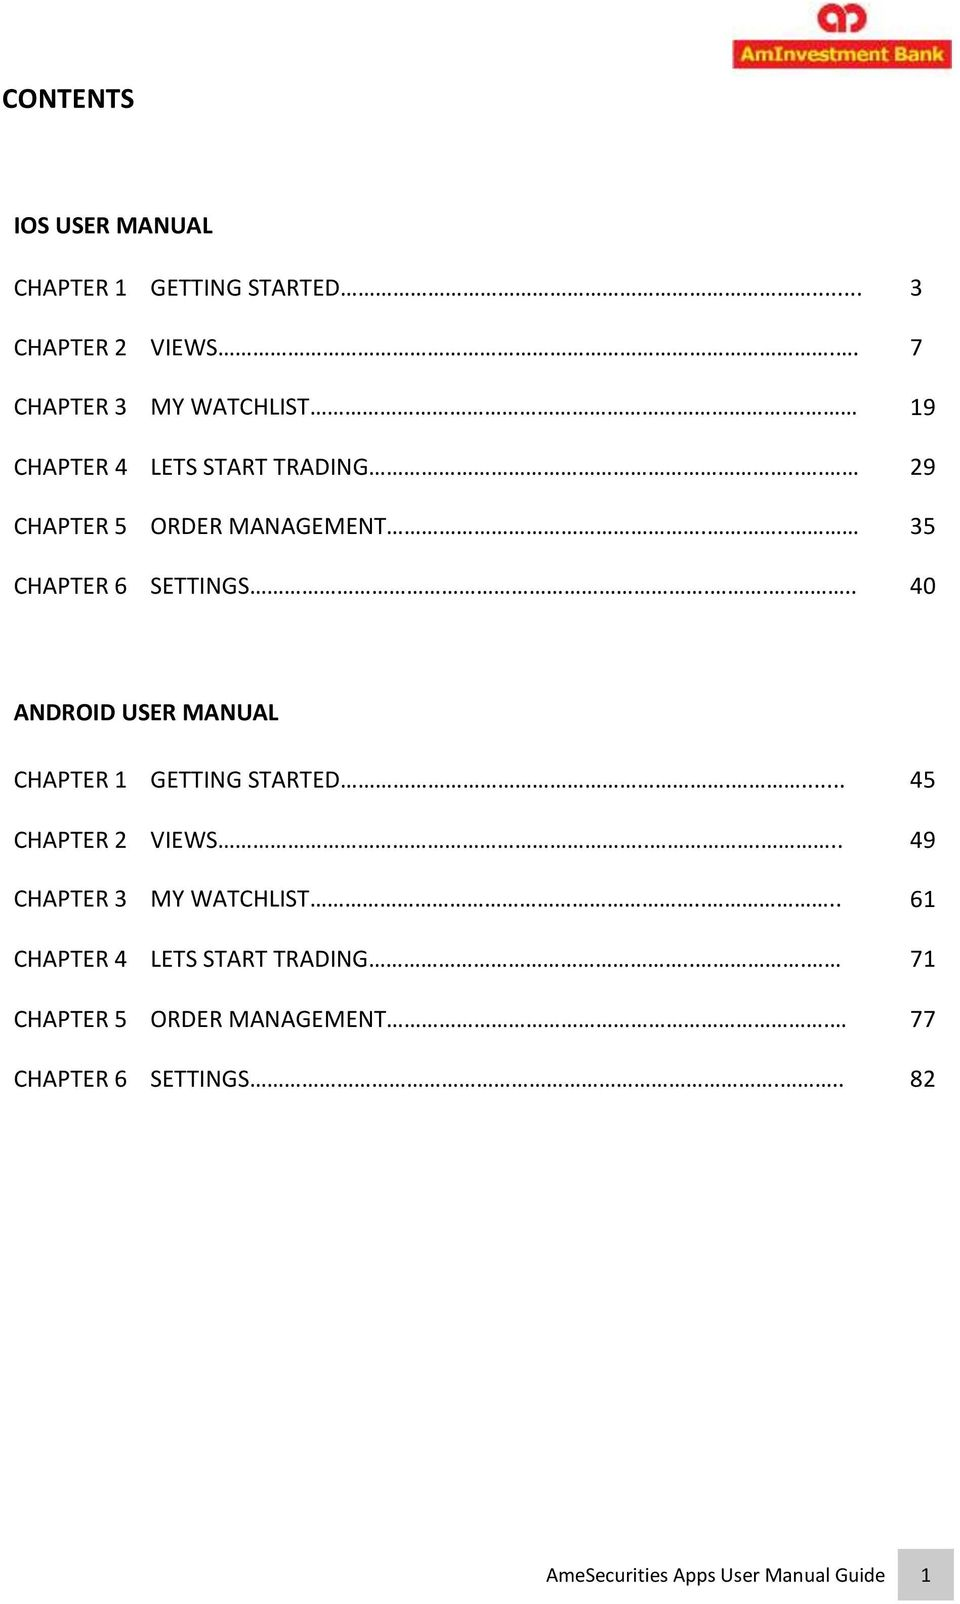 .... 40 ANDROID USER MANUAL CHAPTER 1 GETTING STARTED.... 45 CHAPTER 2 VIEWS..... 49 CHAPTER 3 MY WATCHLIST.